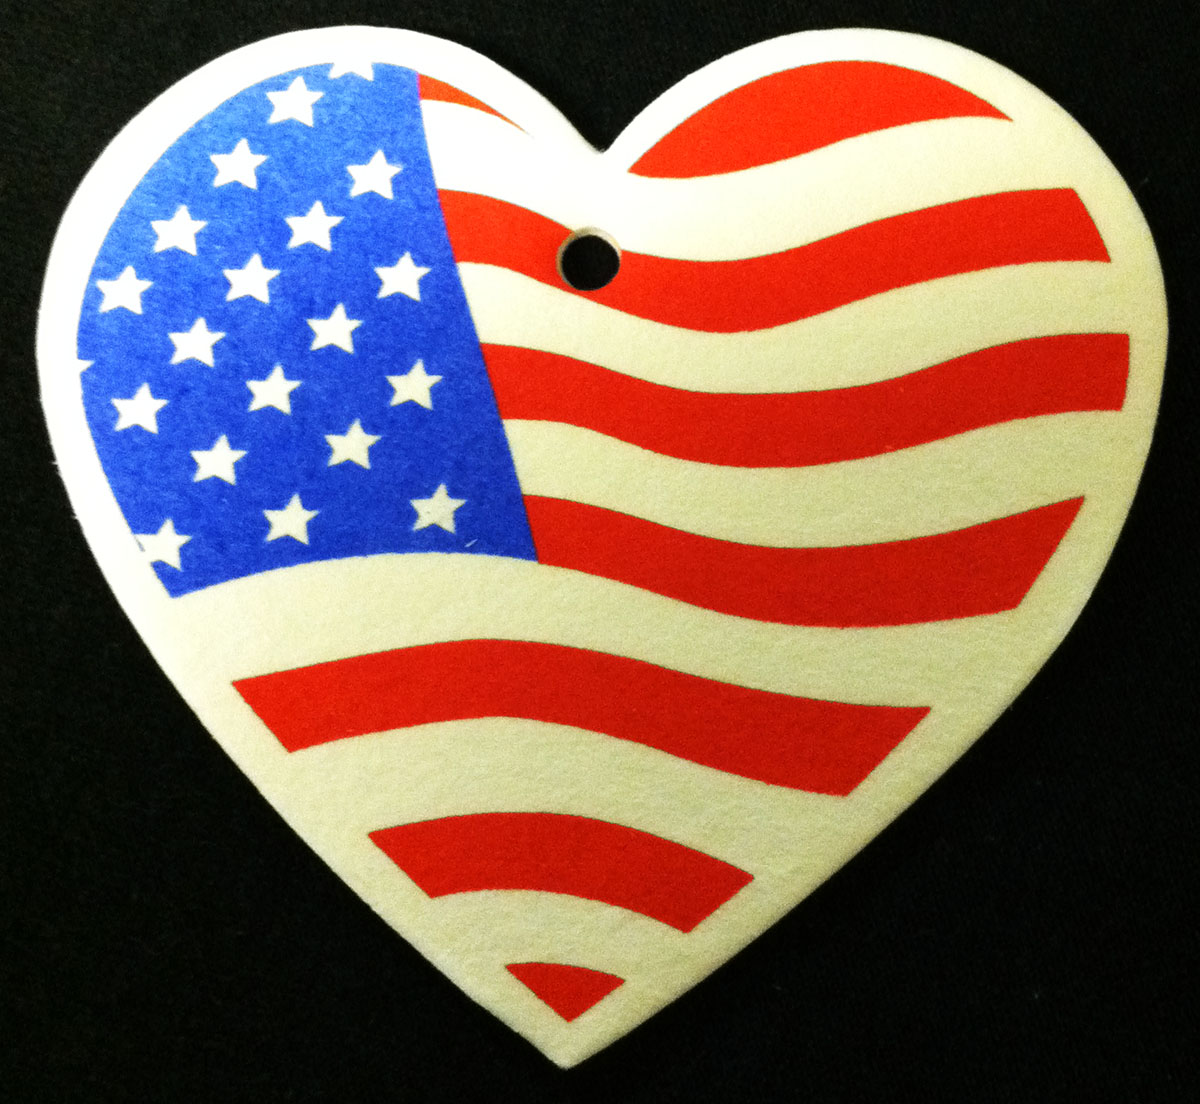 USA Heart Shaped American Flag Car Air Freshener